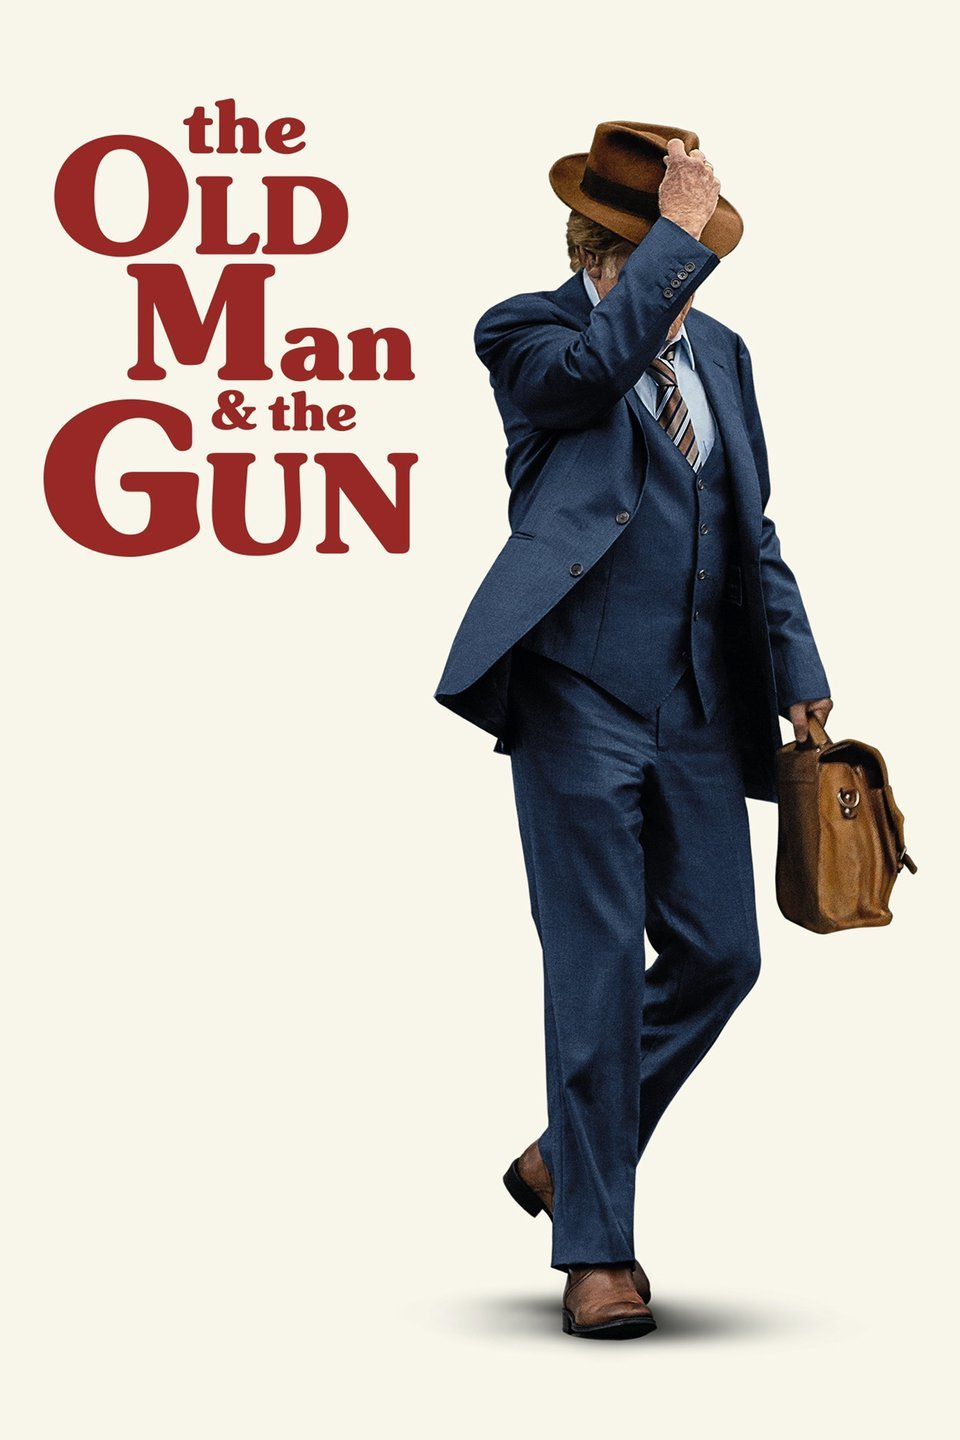 the Old Man and the Gun poster.jpg